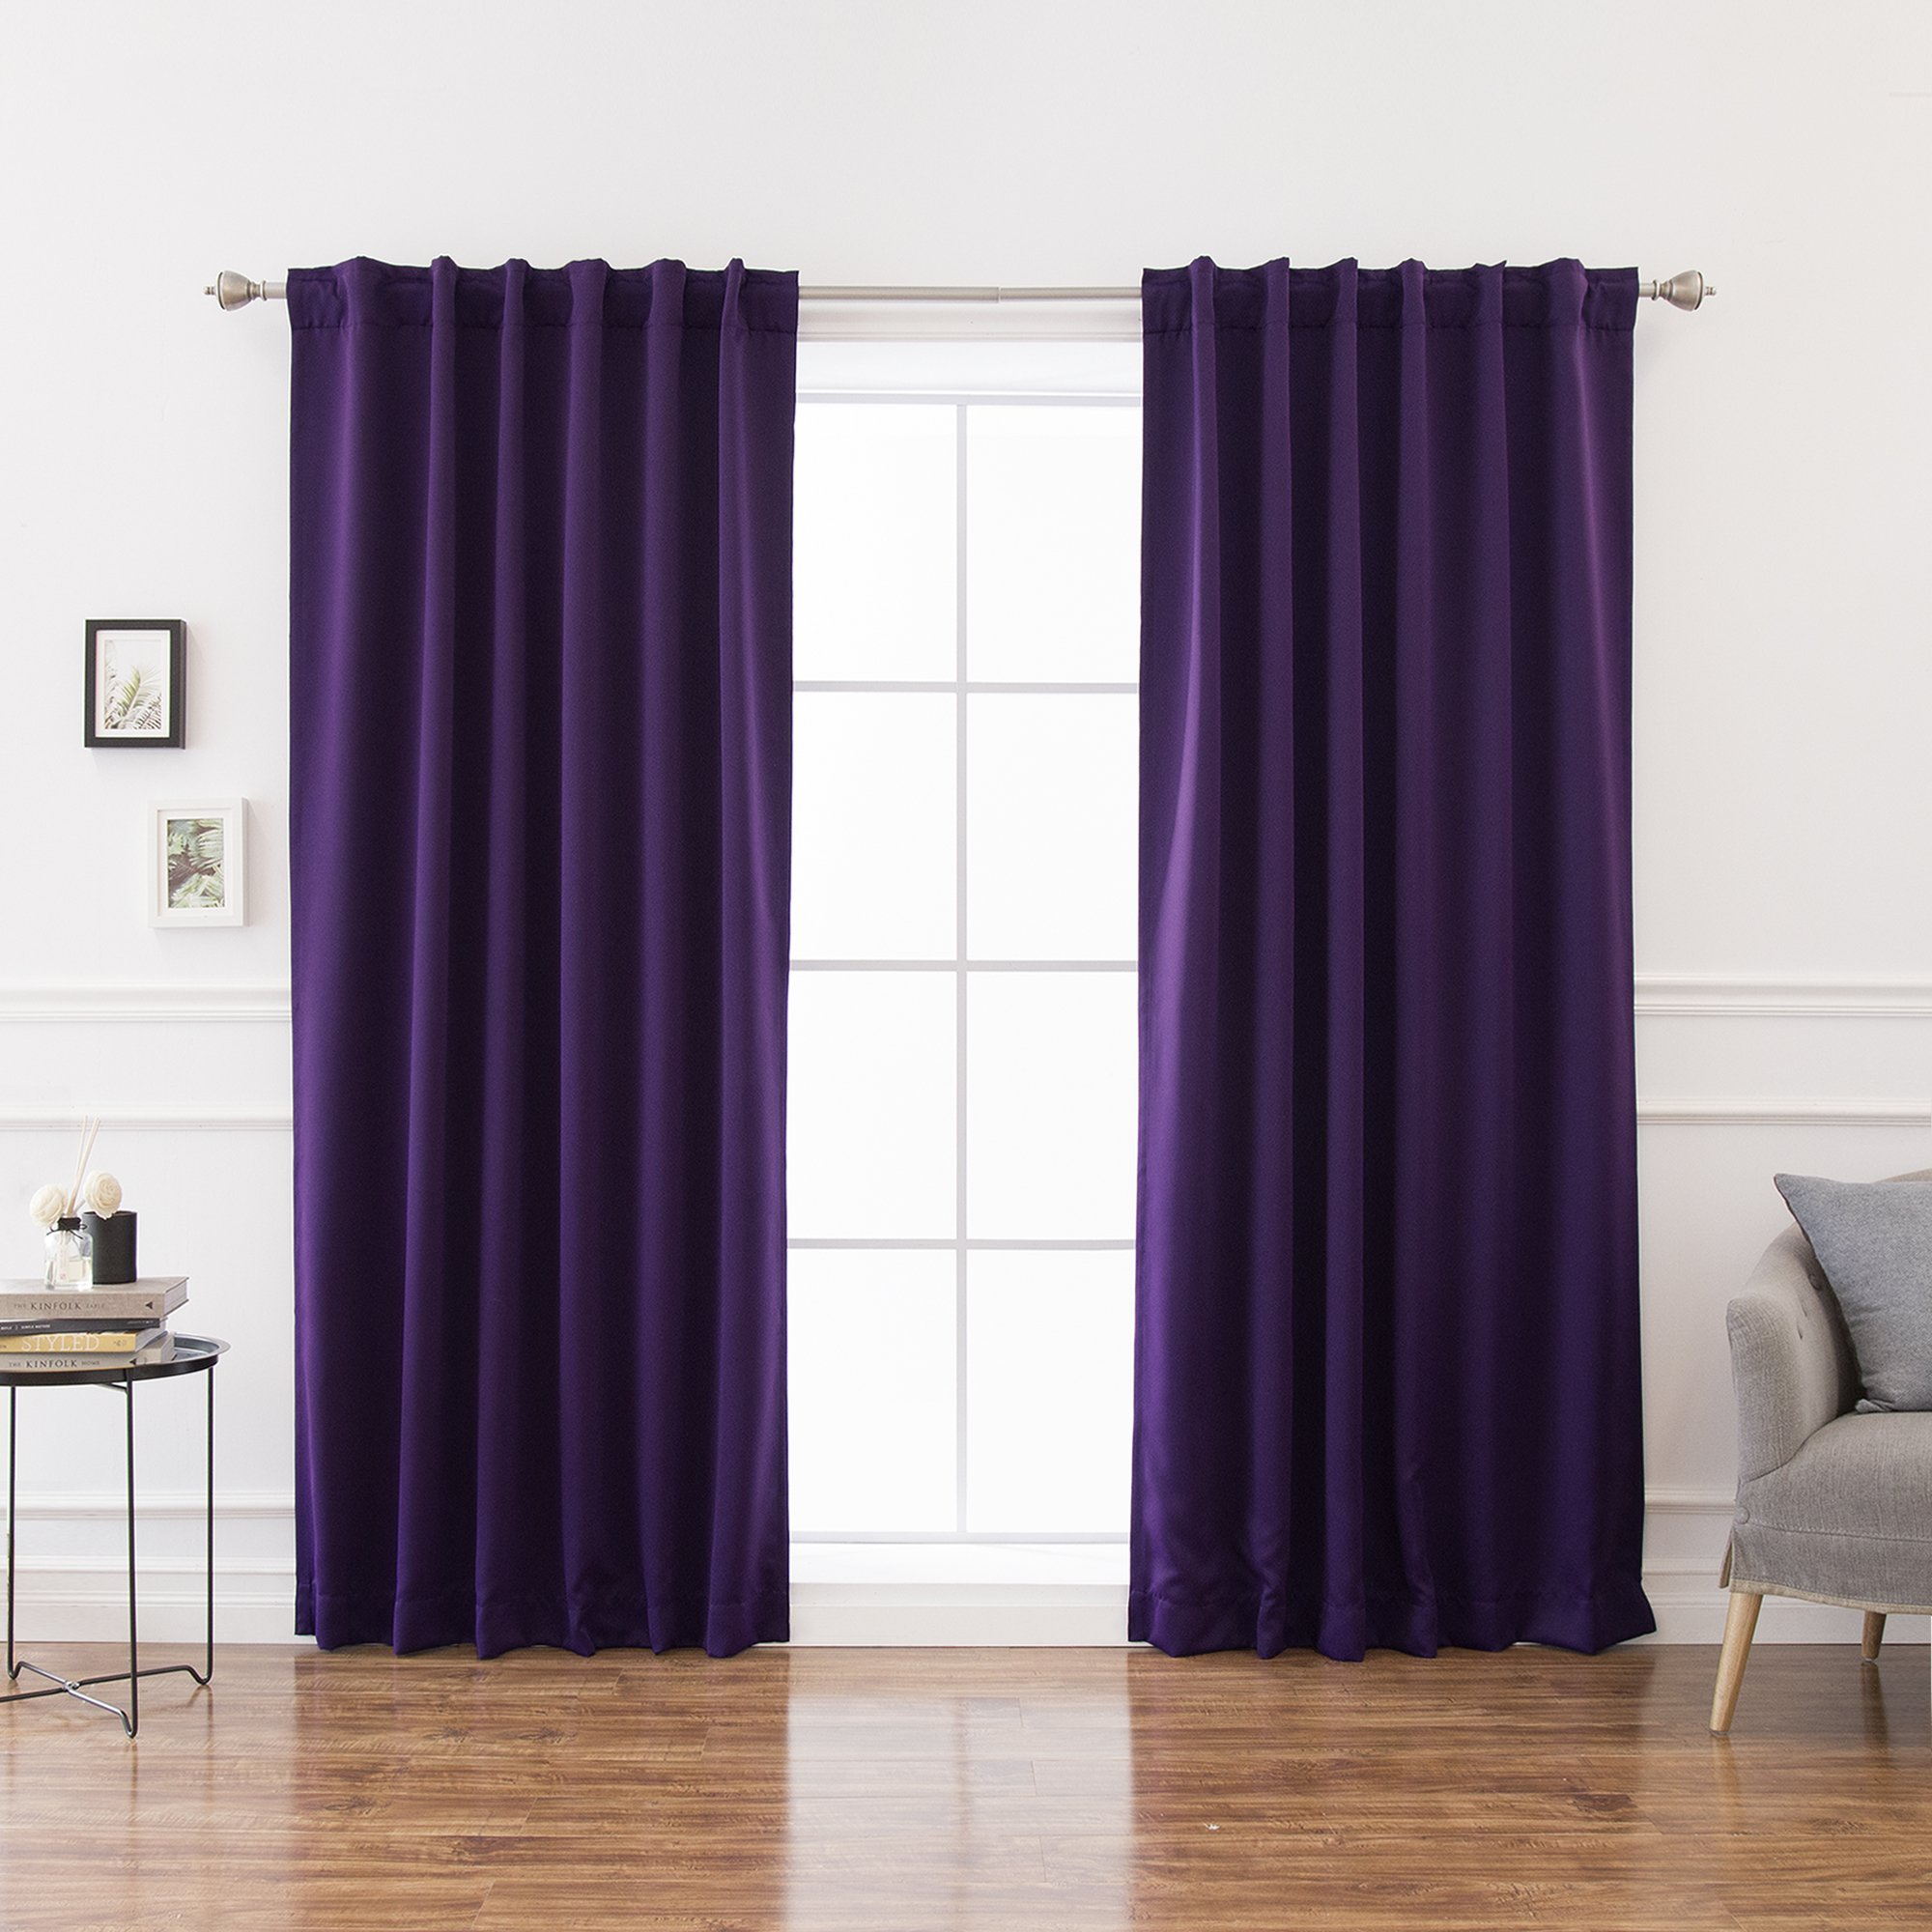 Best Home Fashion Basic Thermal Insulated Blackout Curtains - Back Tab/Rod Pocket - Purple - 52'' W x 84'' L – Tie backs included (Set of 2 Panels)